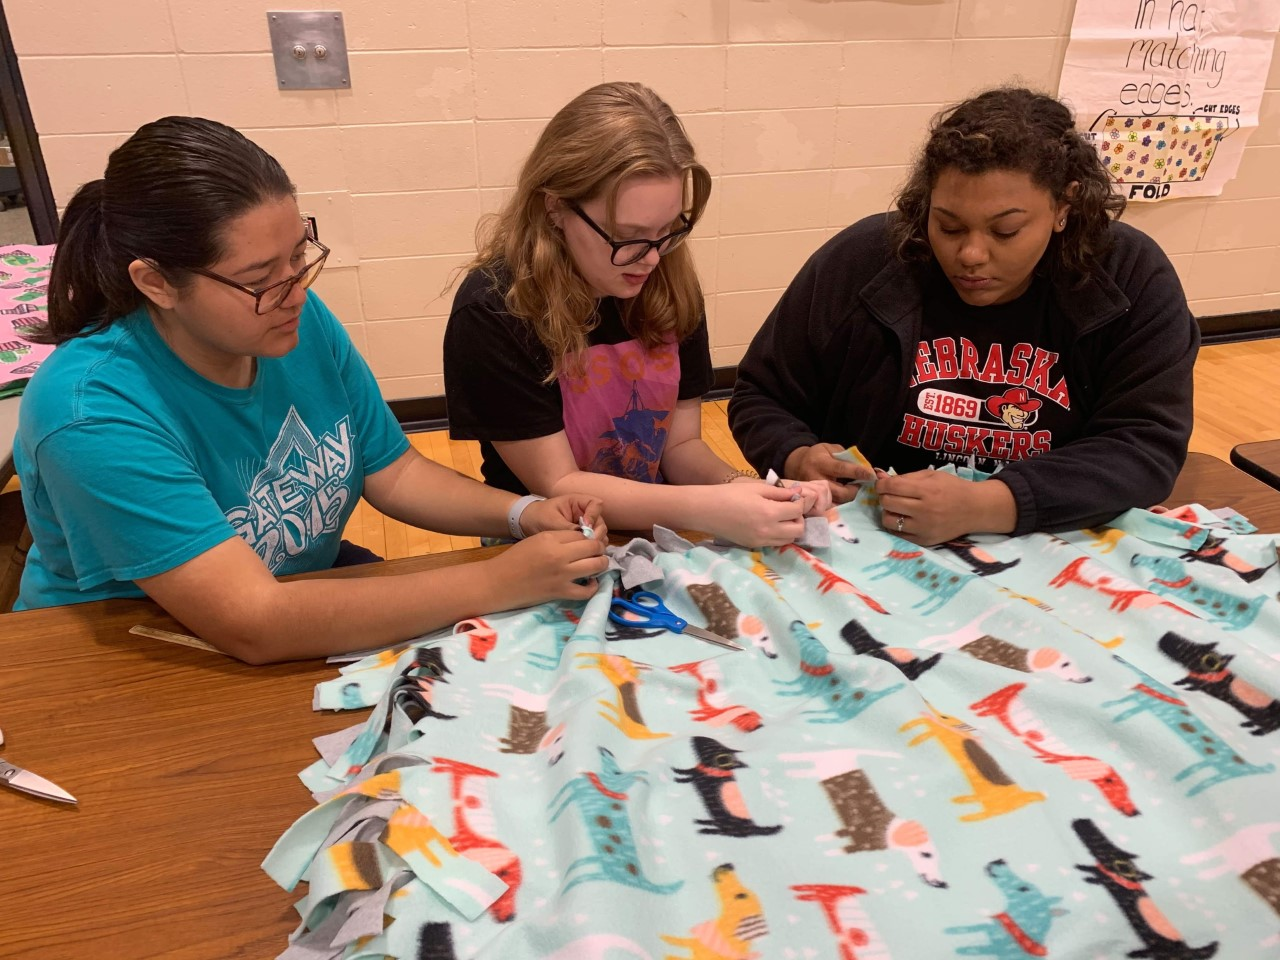 NHS members help tie the fleeces for the blankets. At the bi-annual Project Linus this year, students and past alumni helped make over 900 blankets that are going to be donated to different organizations for people in need.